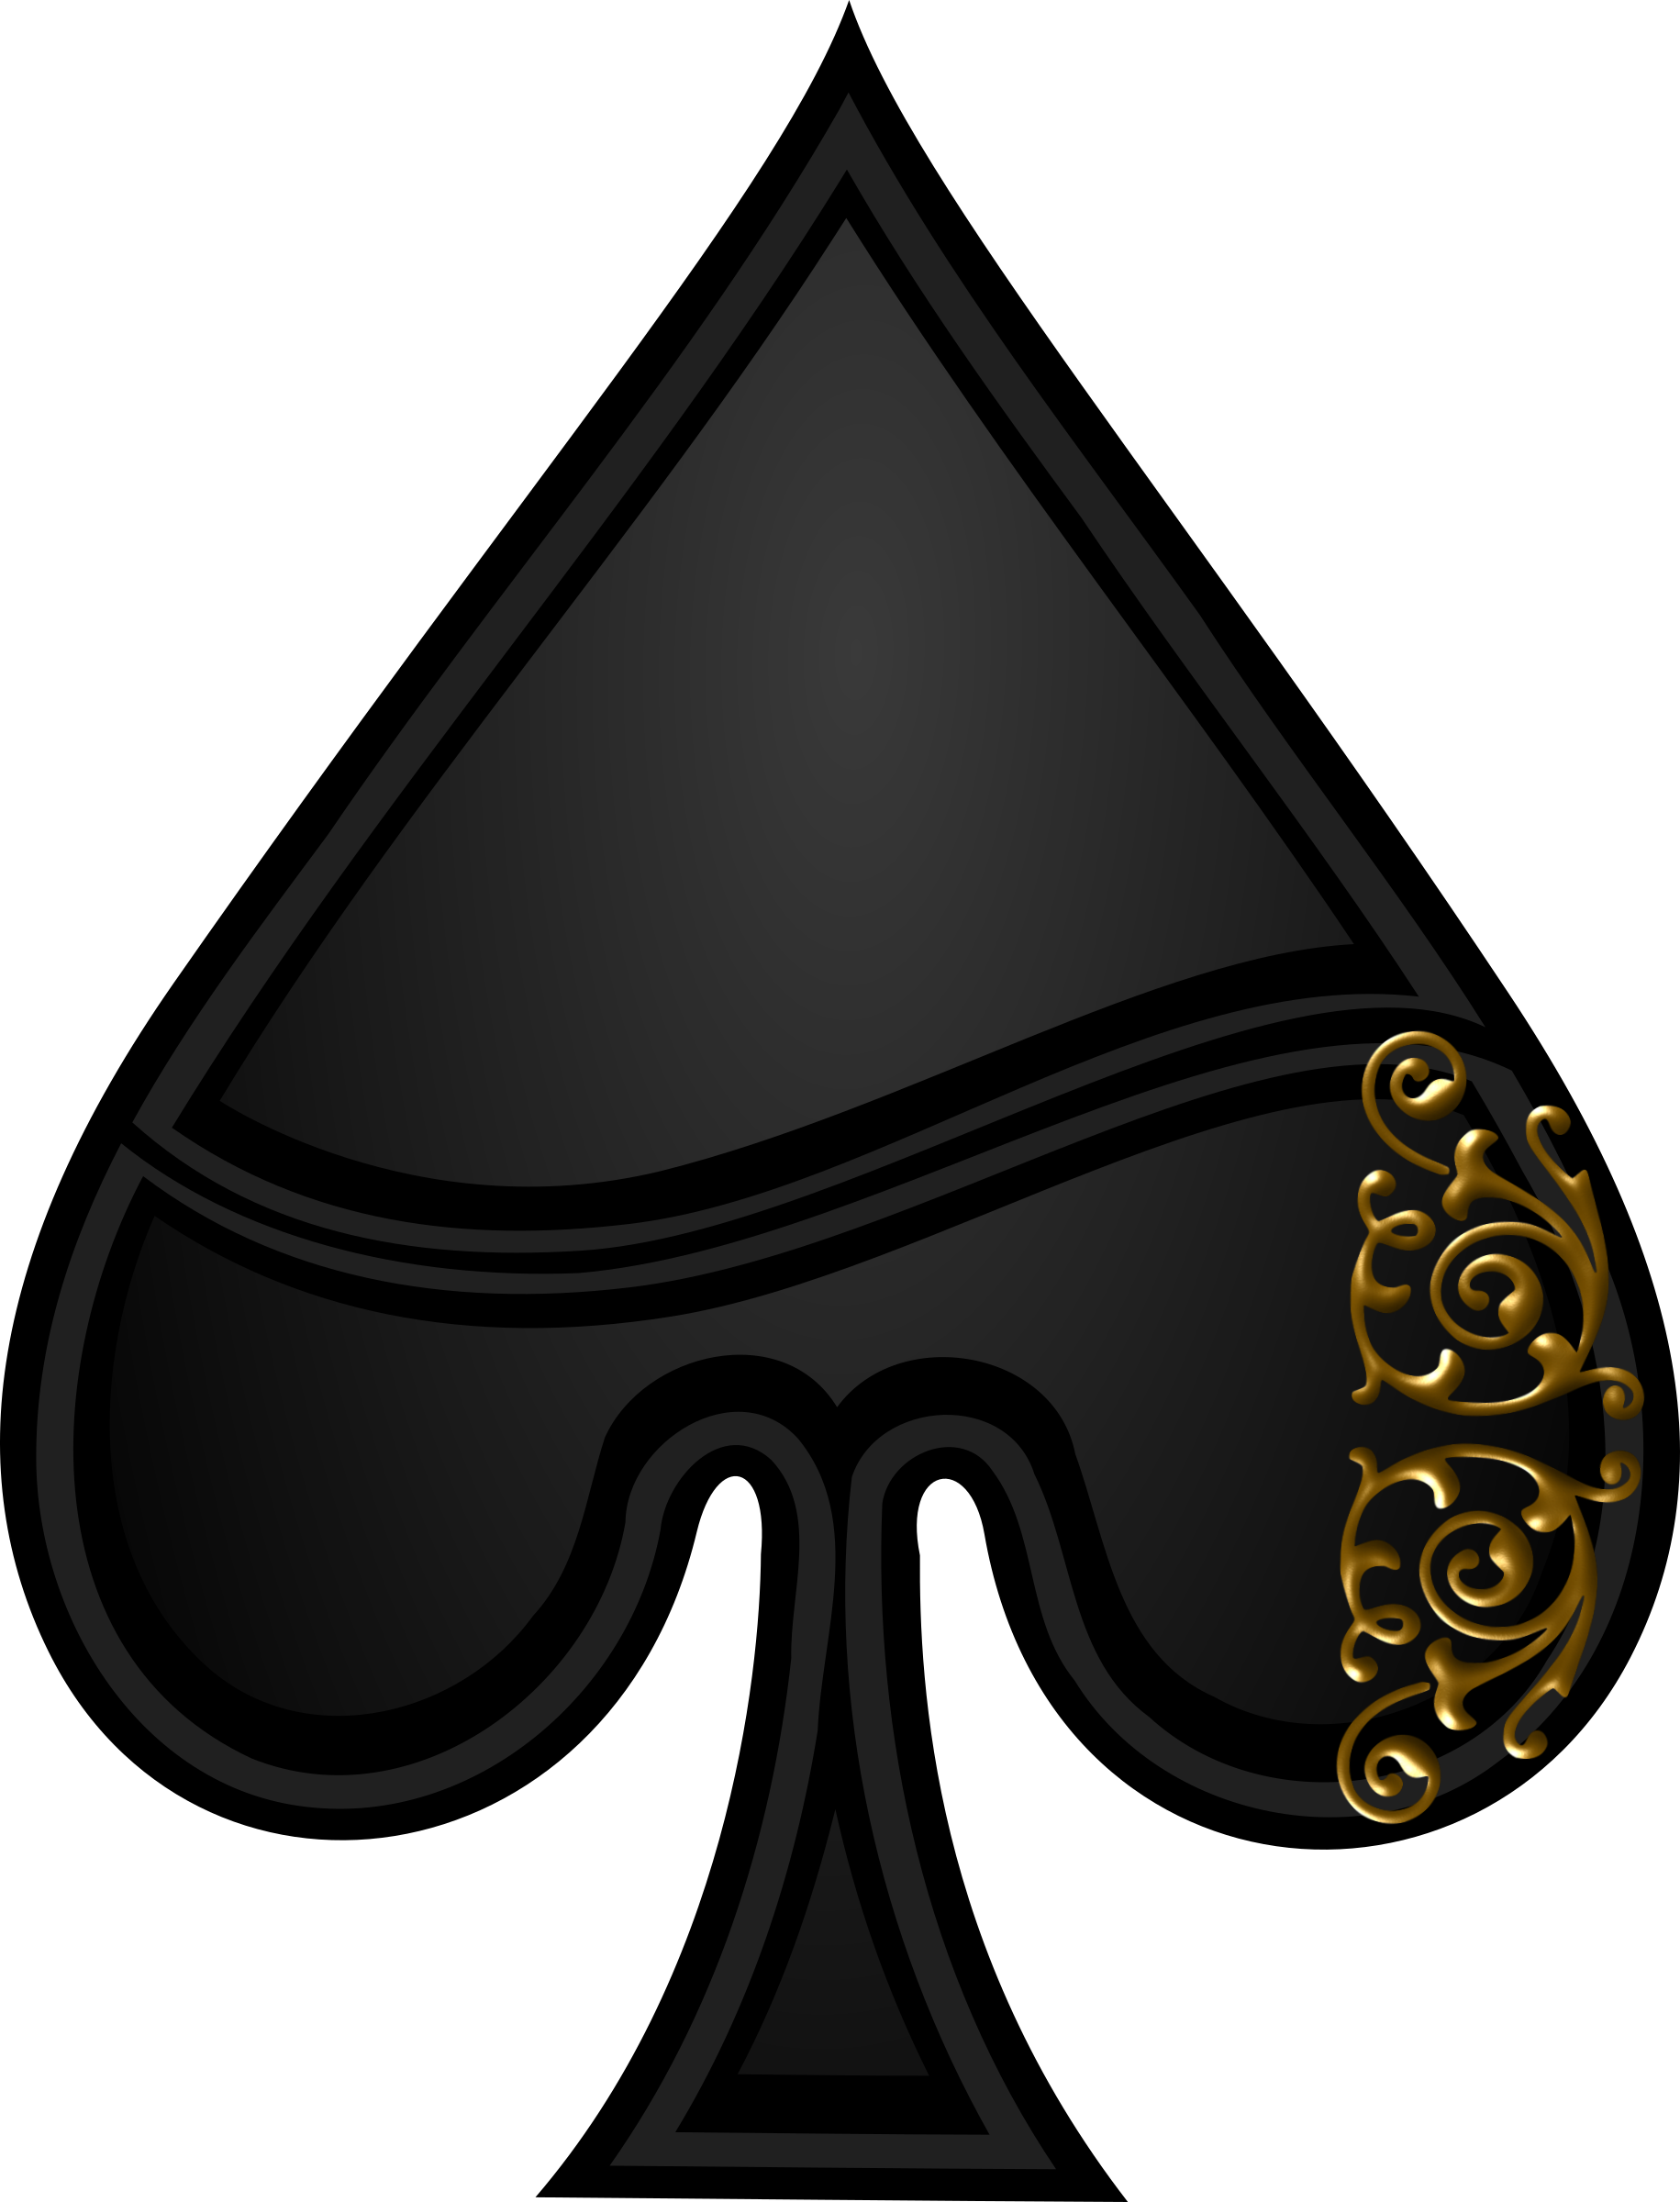 Spades Symbol by Merlin2525